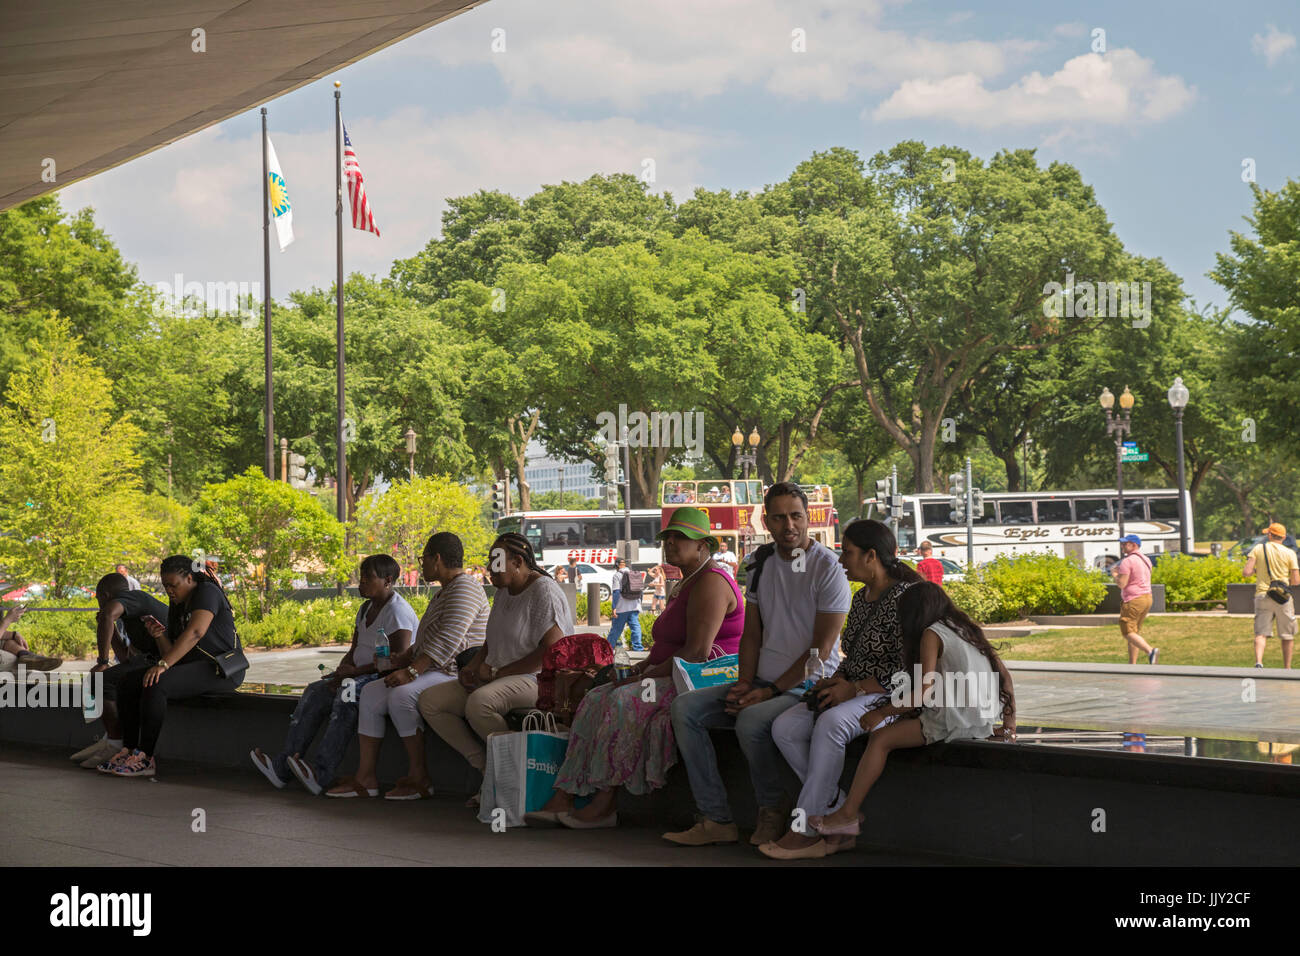 Washington, DC - Visitors to the National Museum of African American History and Culture sit by a pool outside the museum. Stock Photo